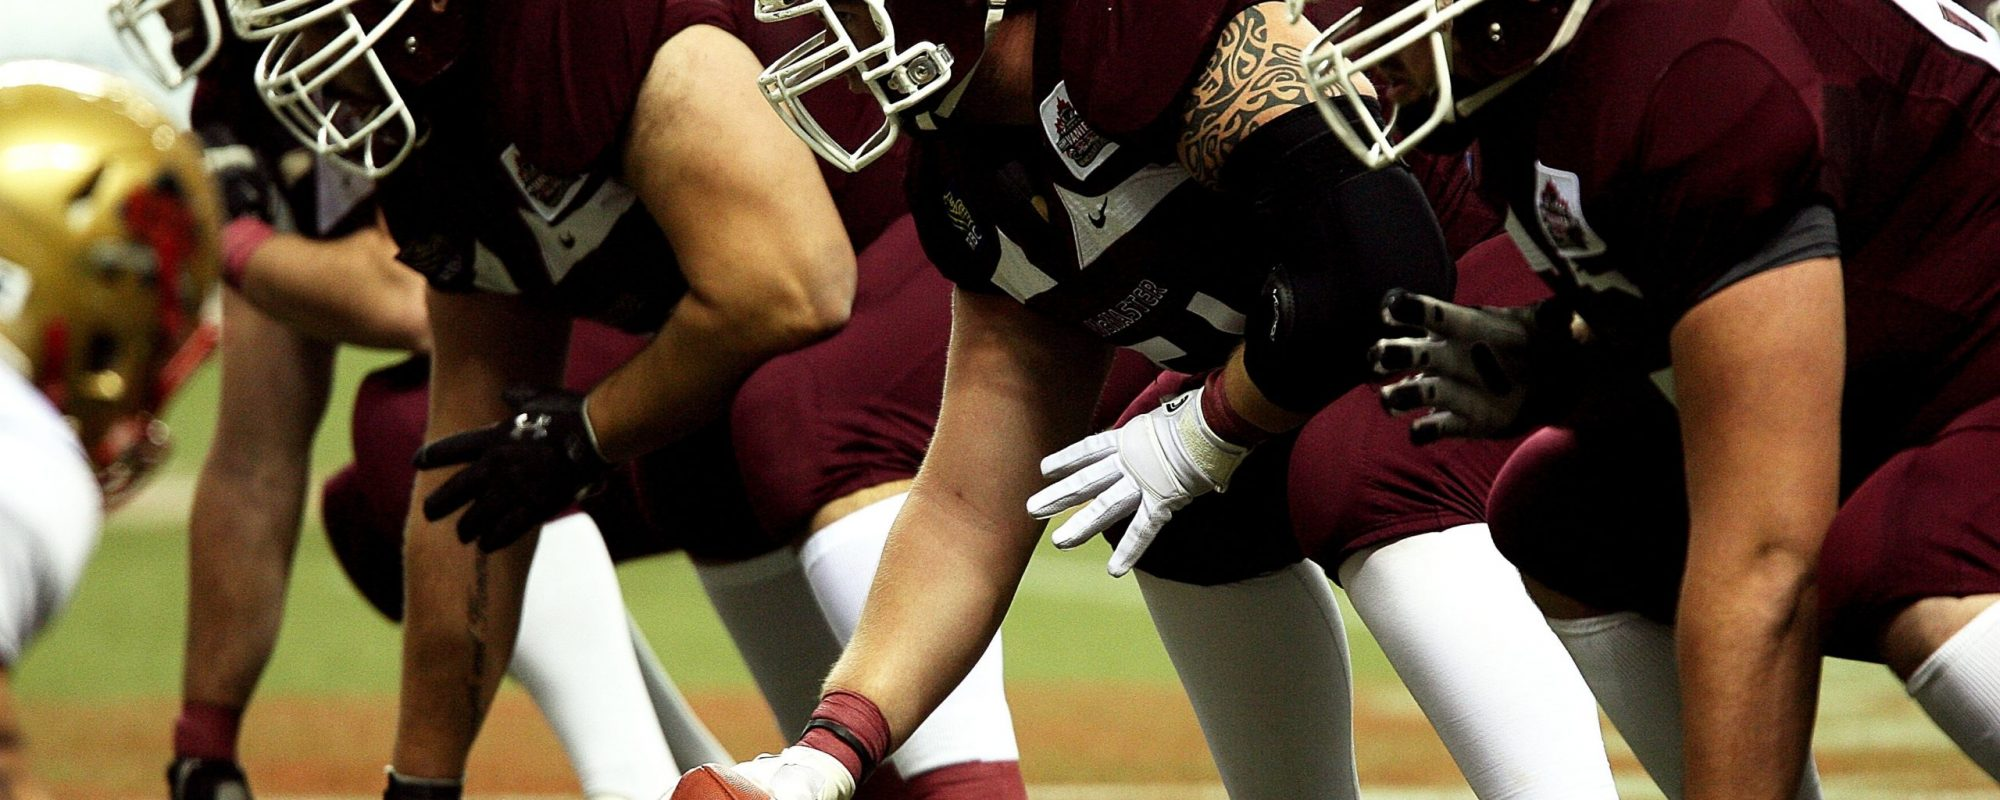 football-player-game-position-163398